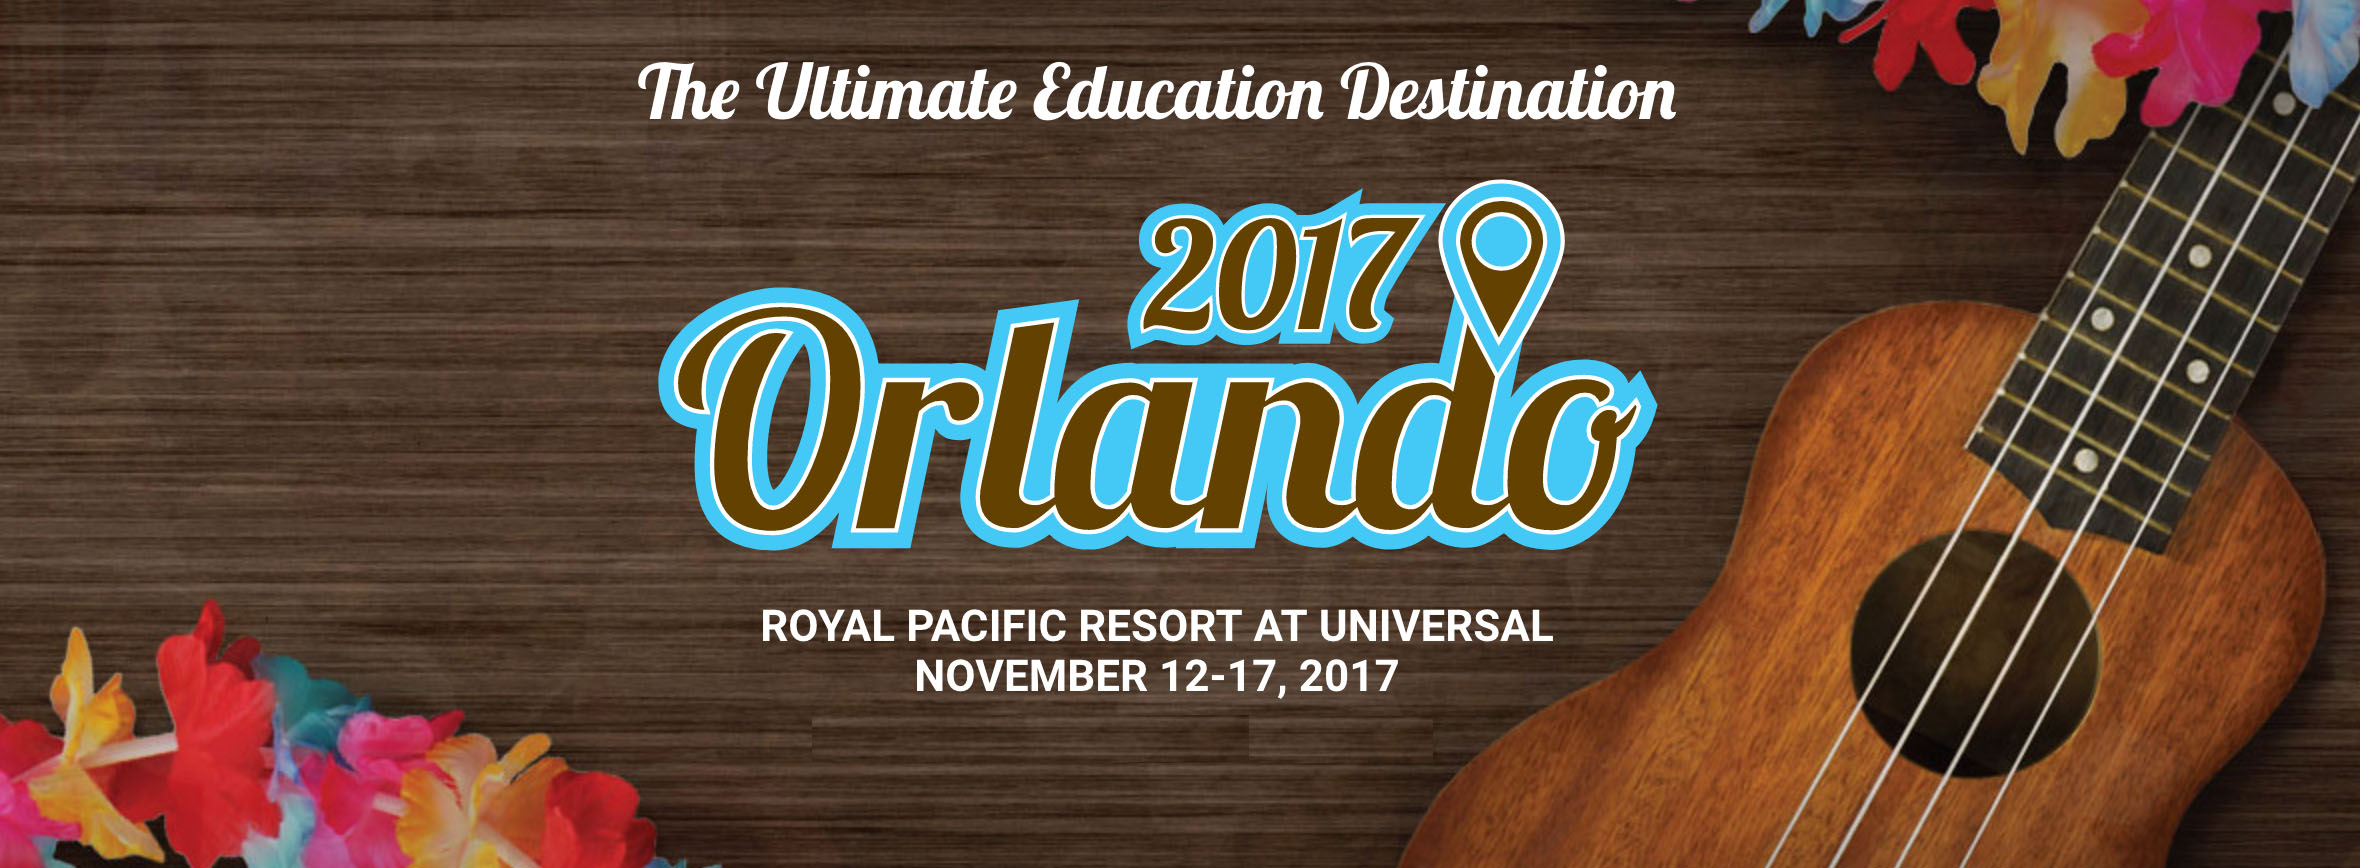 Speaking at Live! 360 in Orlando November 12-17, 2017